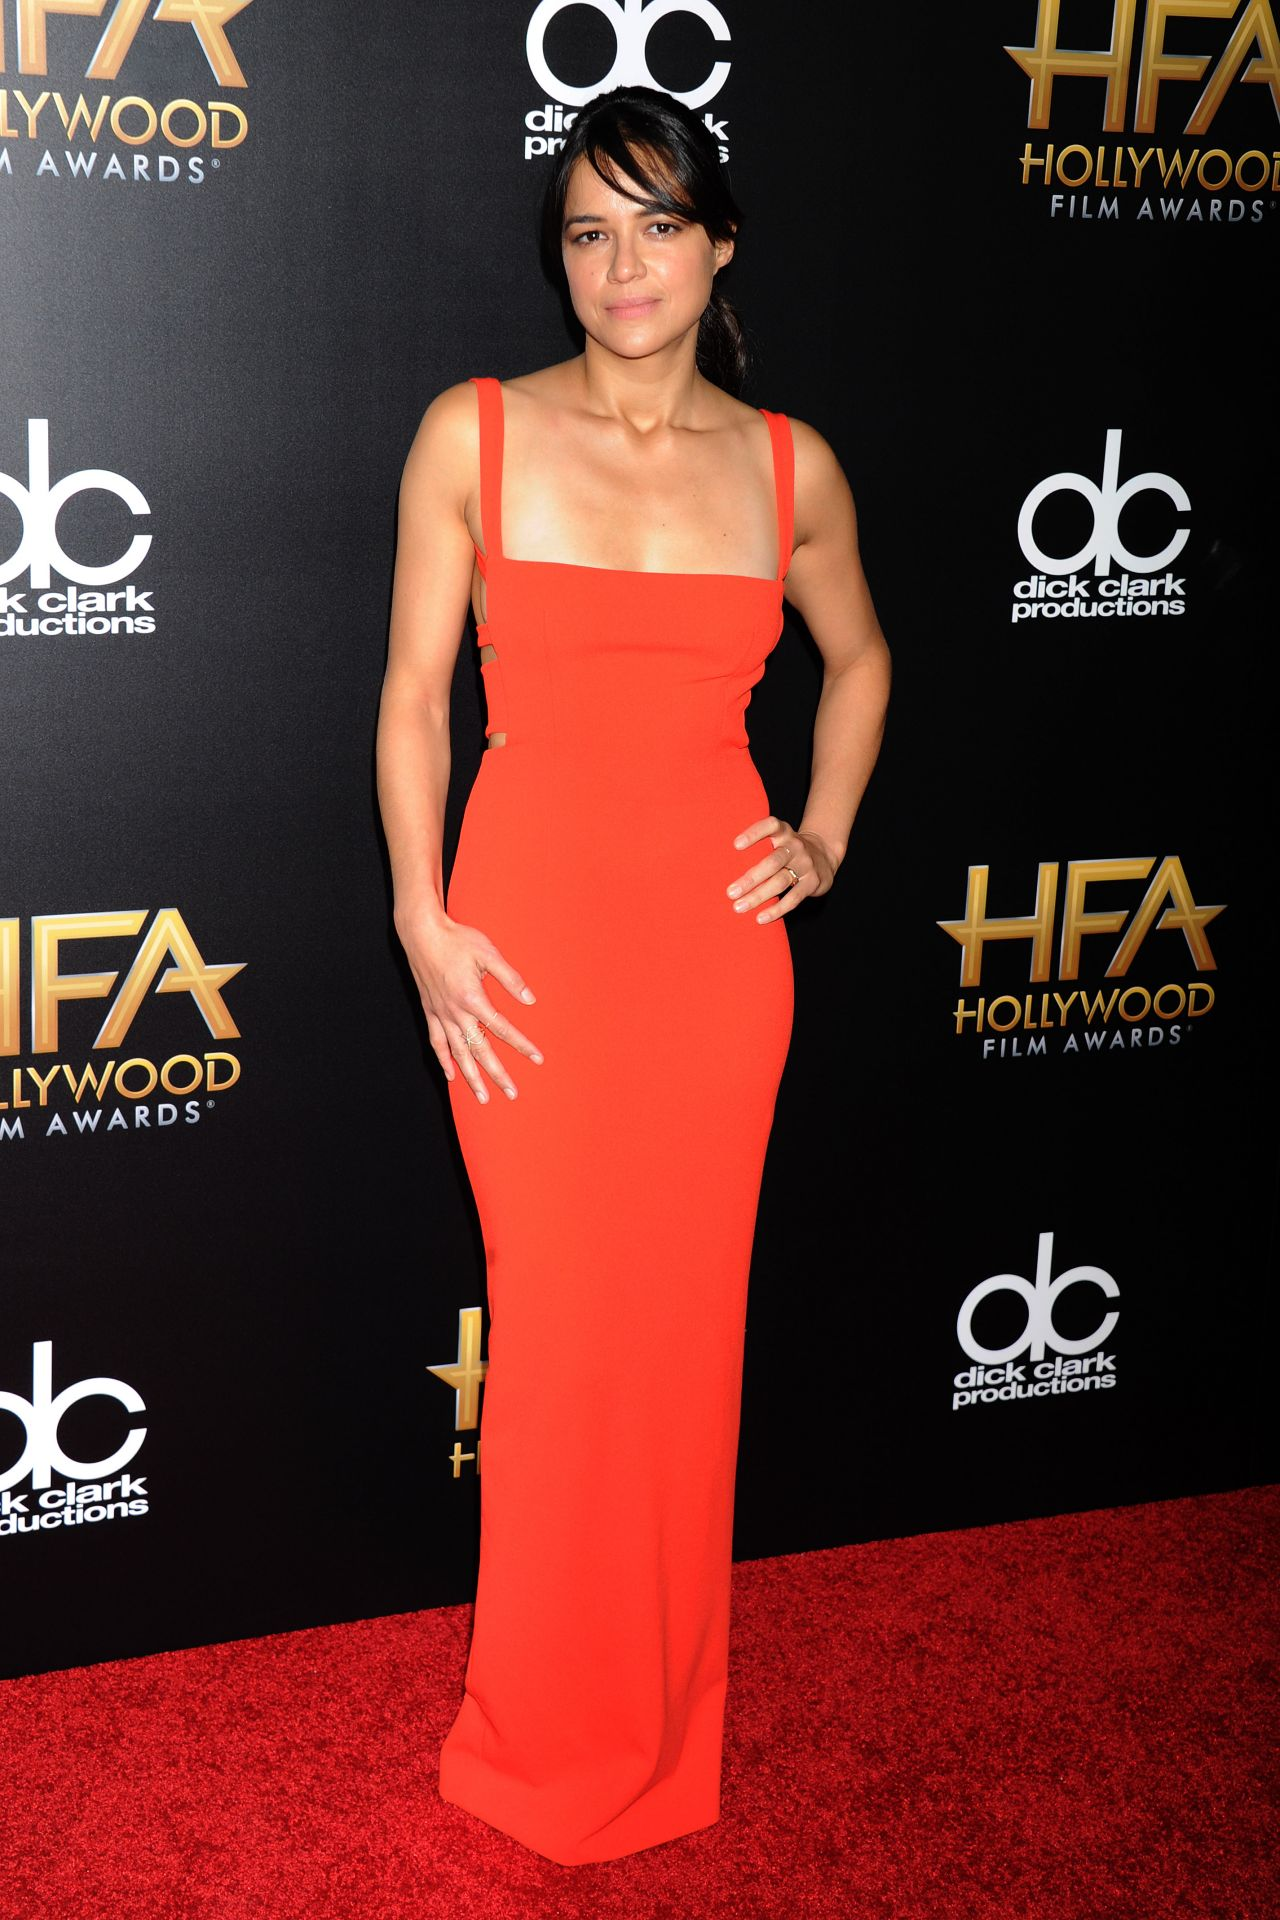 Hollywood Film Awards 2015: See Who Won ( Wore) What Hollywood Film Awards 2015: See Who Won ( Wore) What new photo